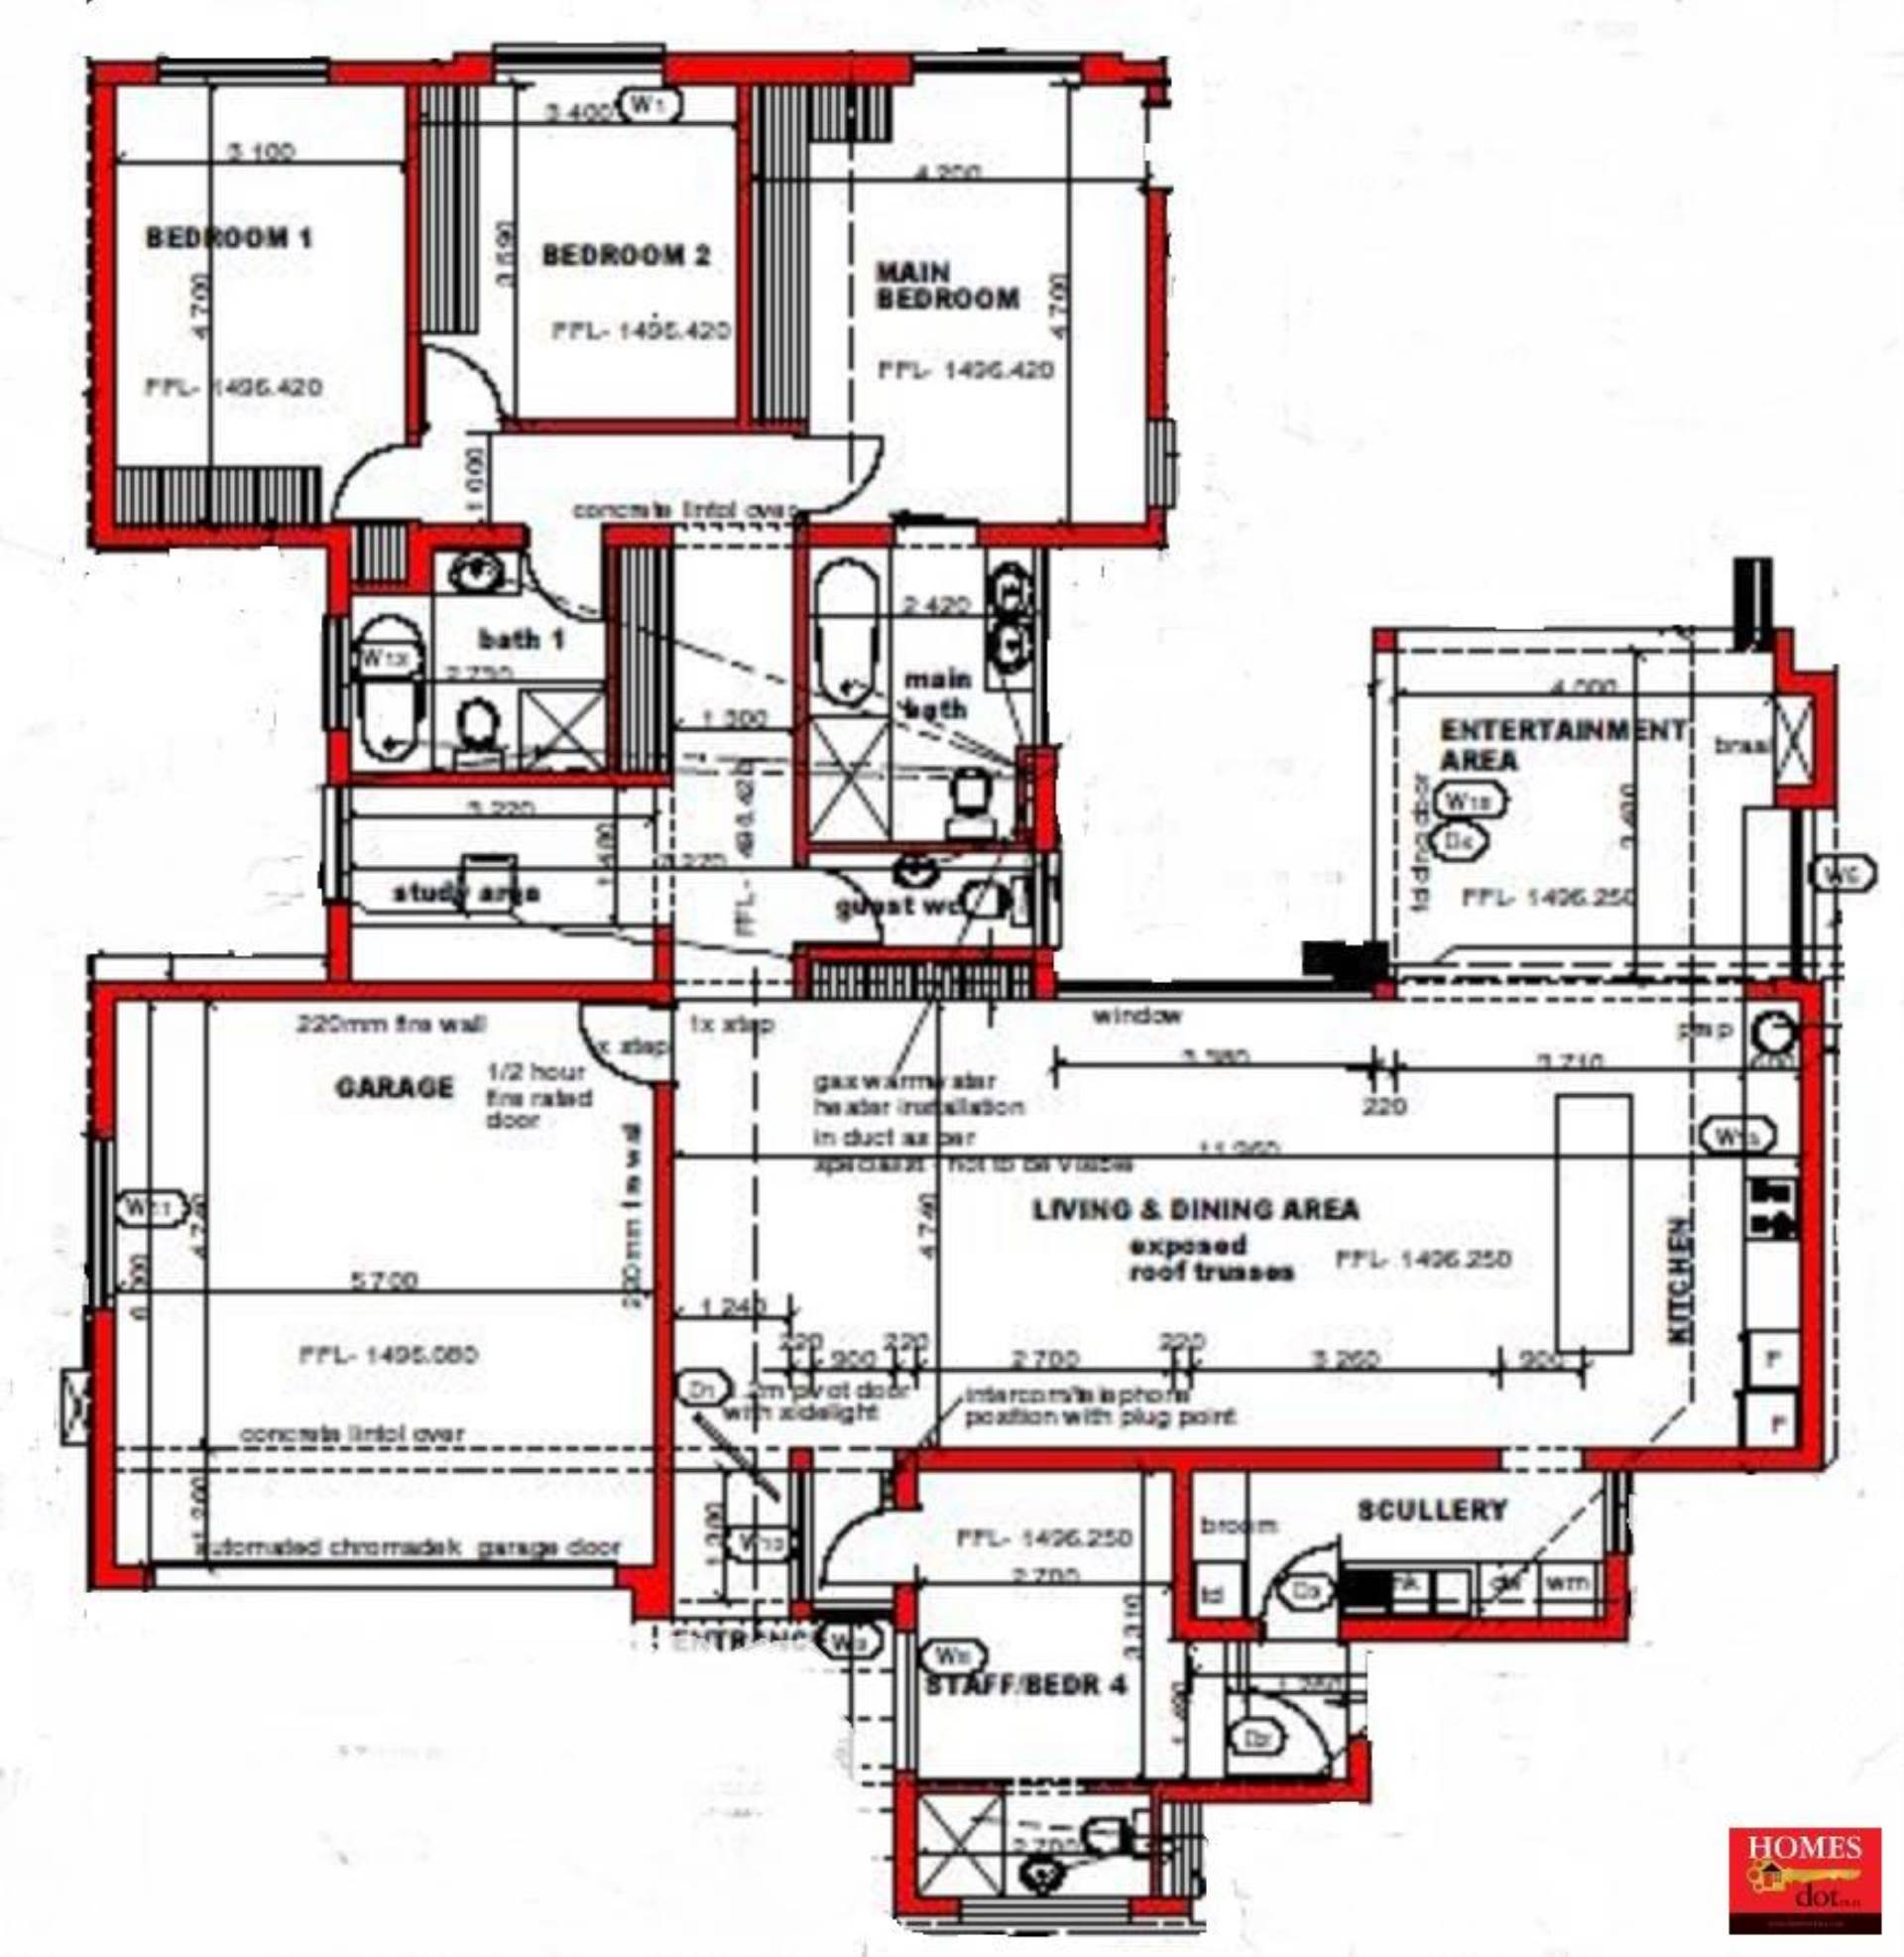 House for sale in midstream meadows centurion for r 3 200 for 4 bedroom house plans under 200 000